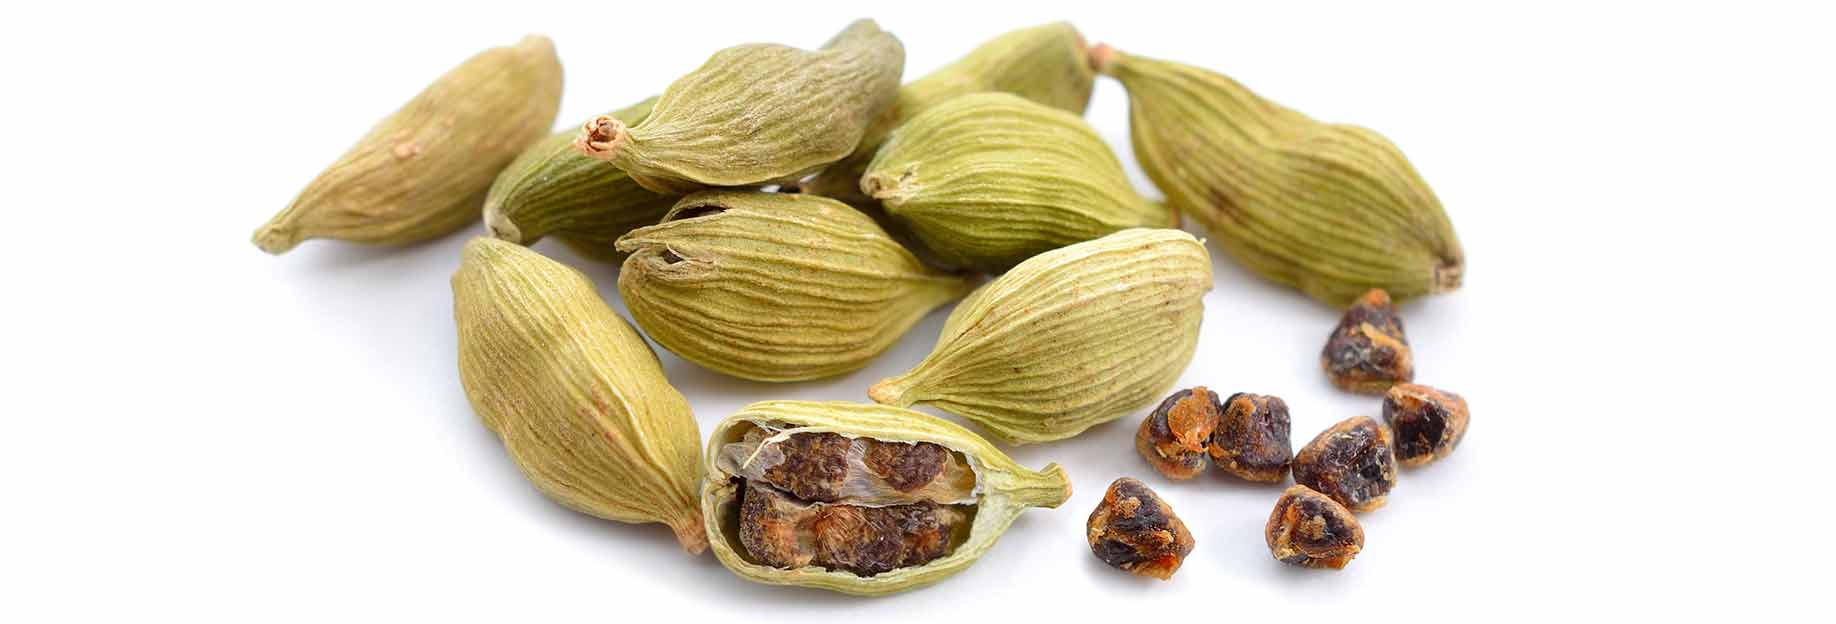 cardamom seeds for high blood pressure hypertension natural remedies herb